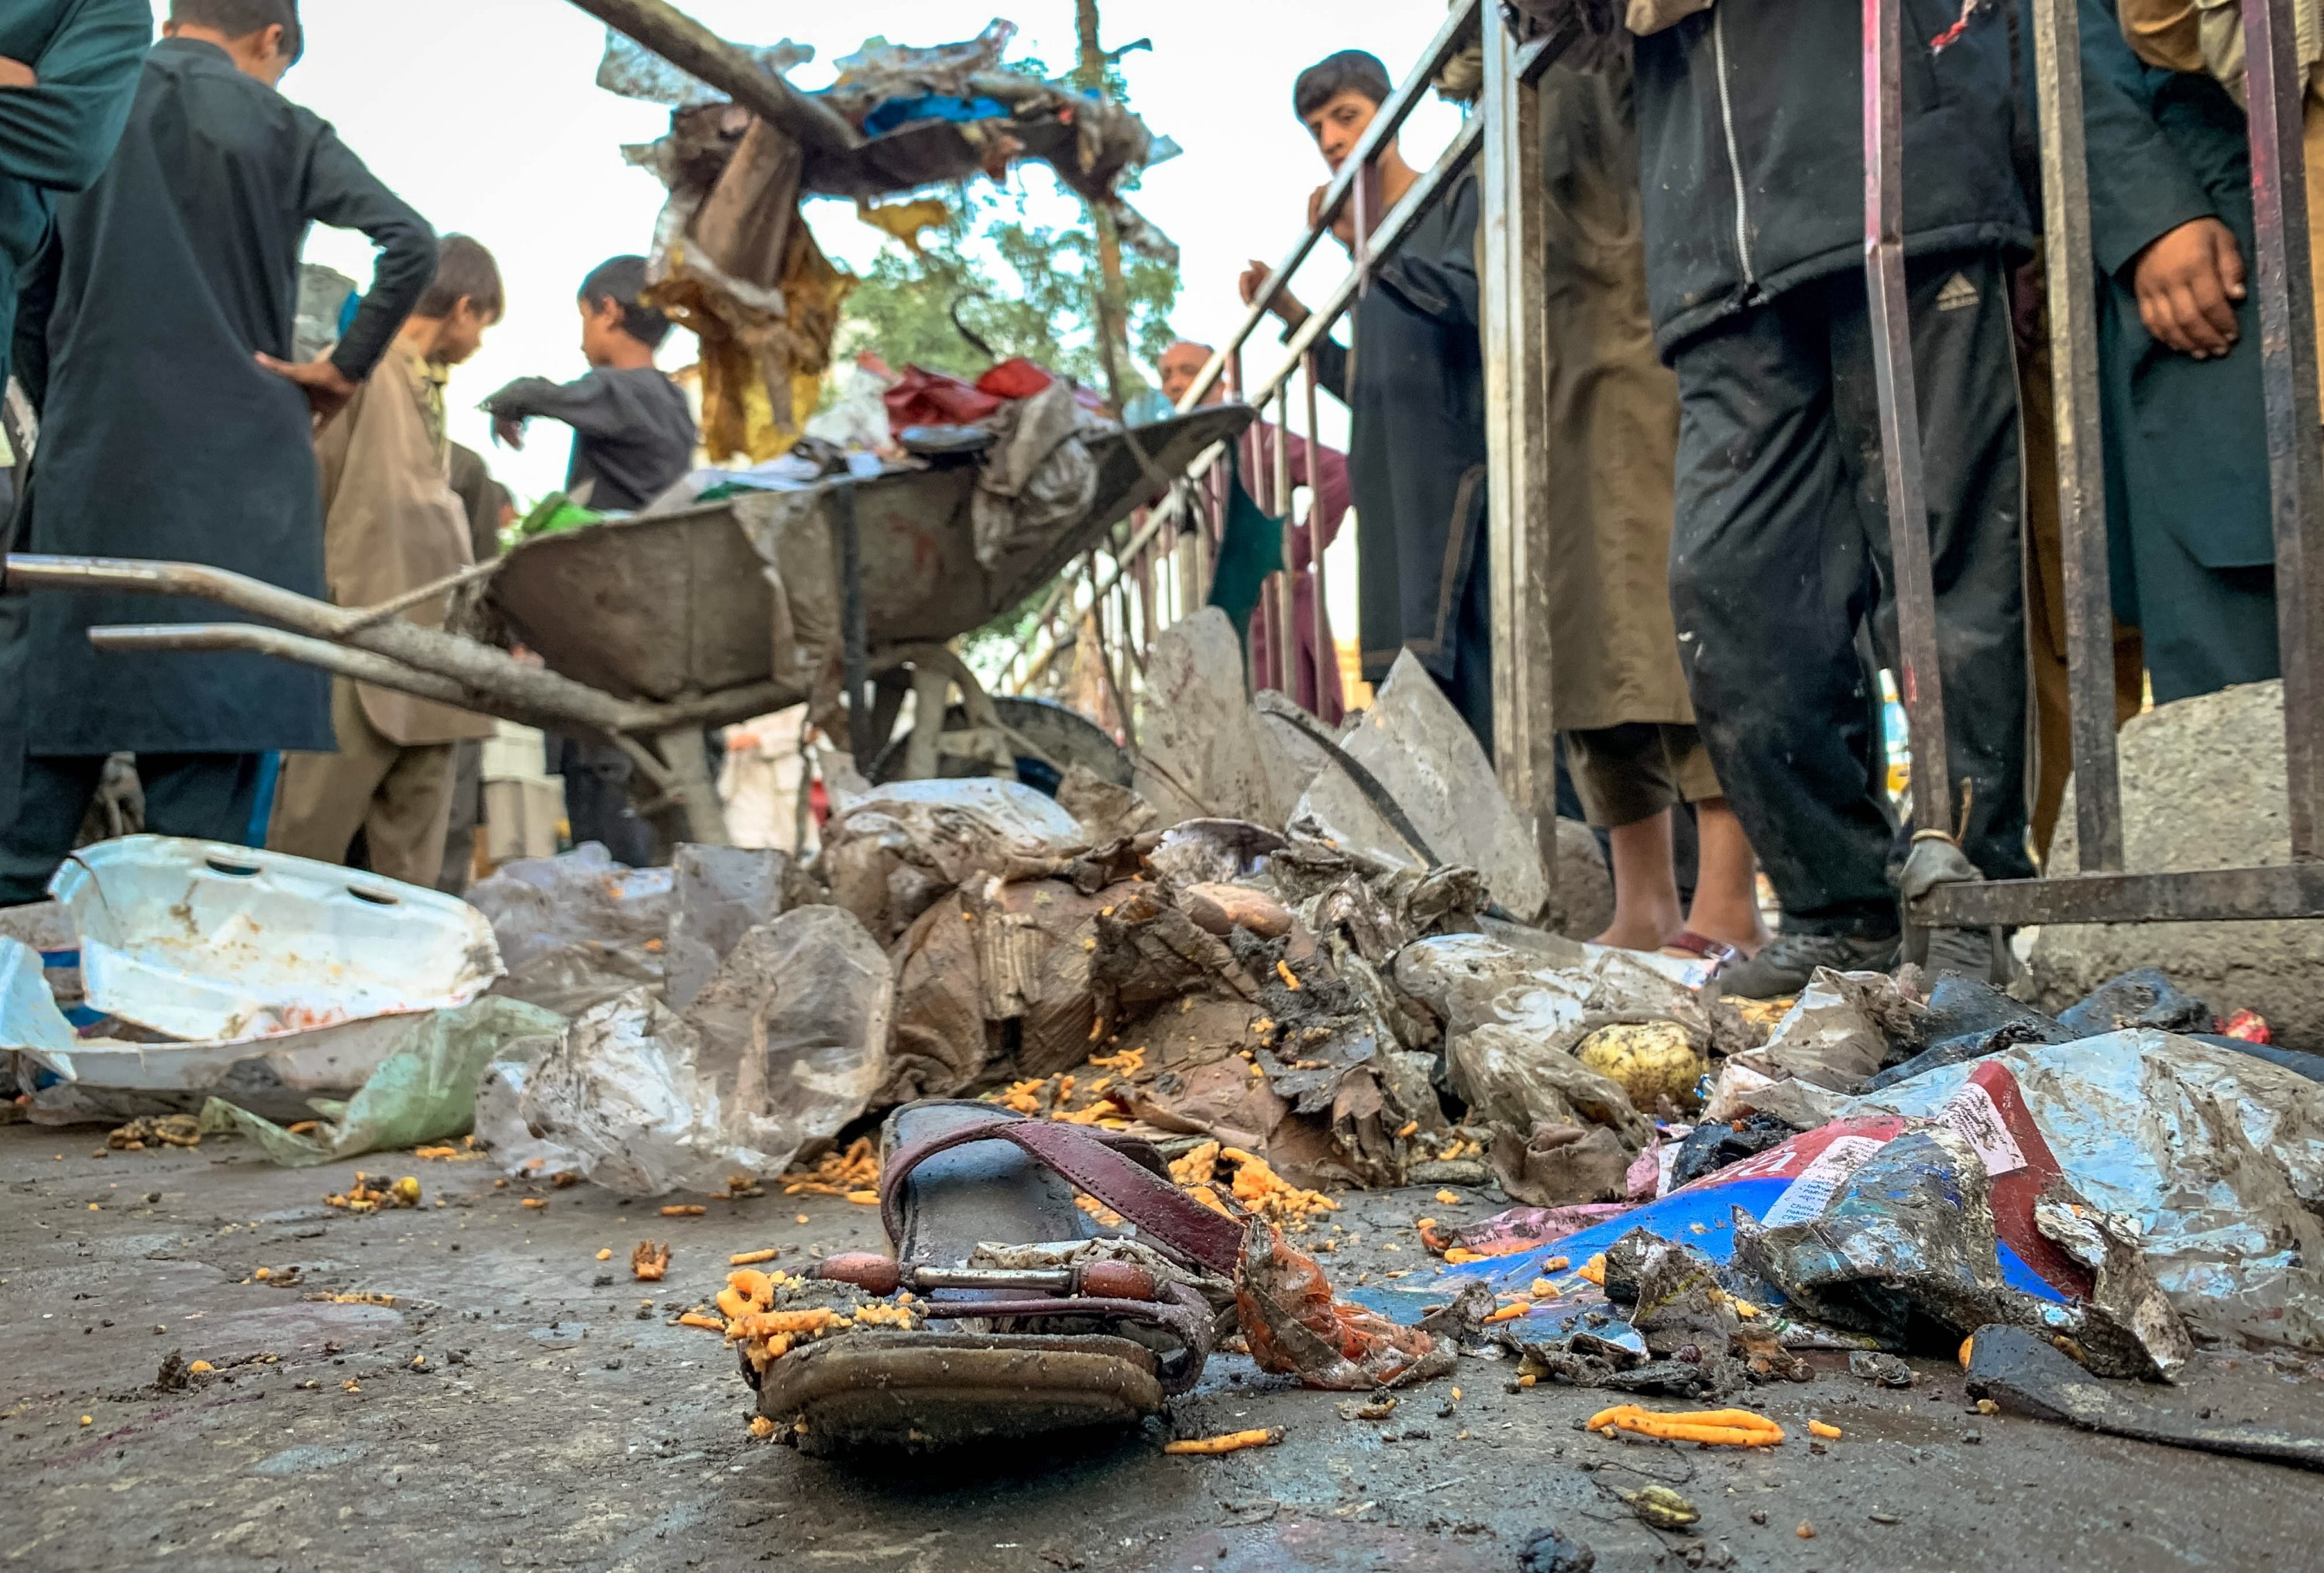 Afghan people watch personal belongings of victims as municipality workers clean the scene after a bomb explosion in Kabul, Afghanistan, July 13, 2021. (EPA Photo)